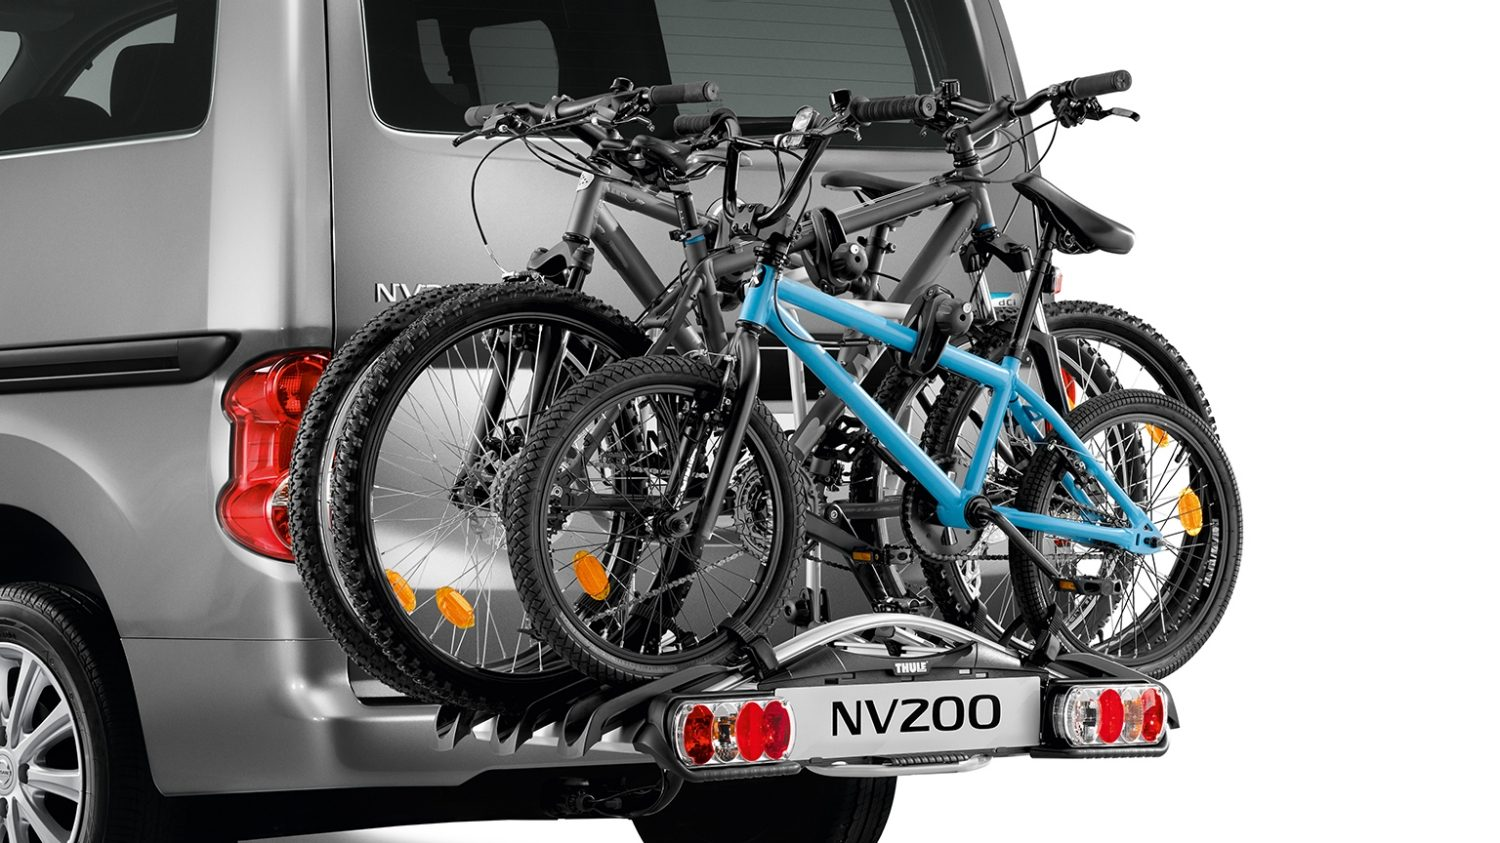 Nissan Evalia - Transportation - Bike carrier towbar mounted 3 bikes